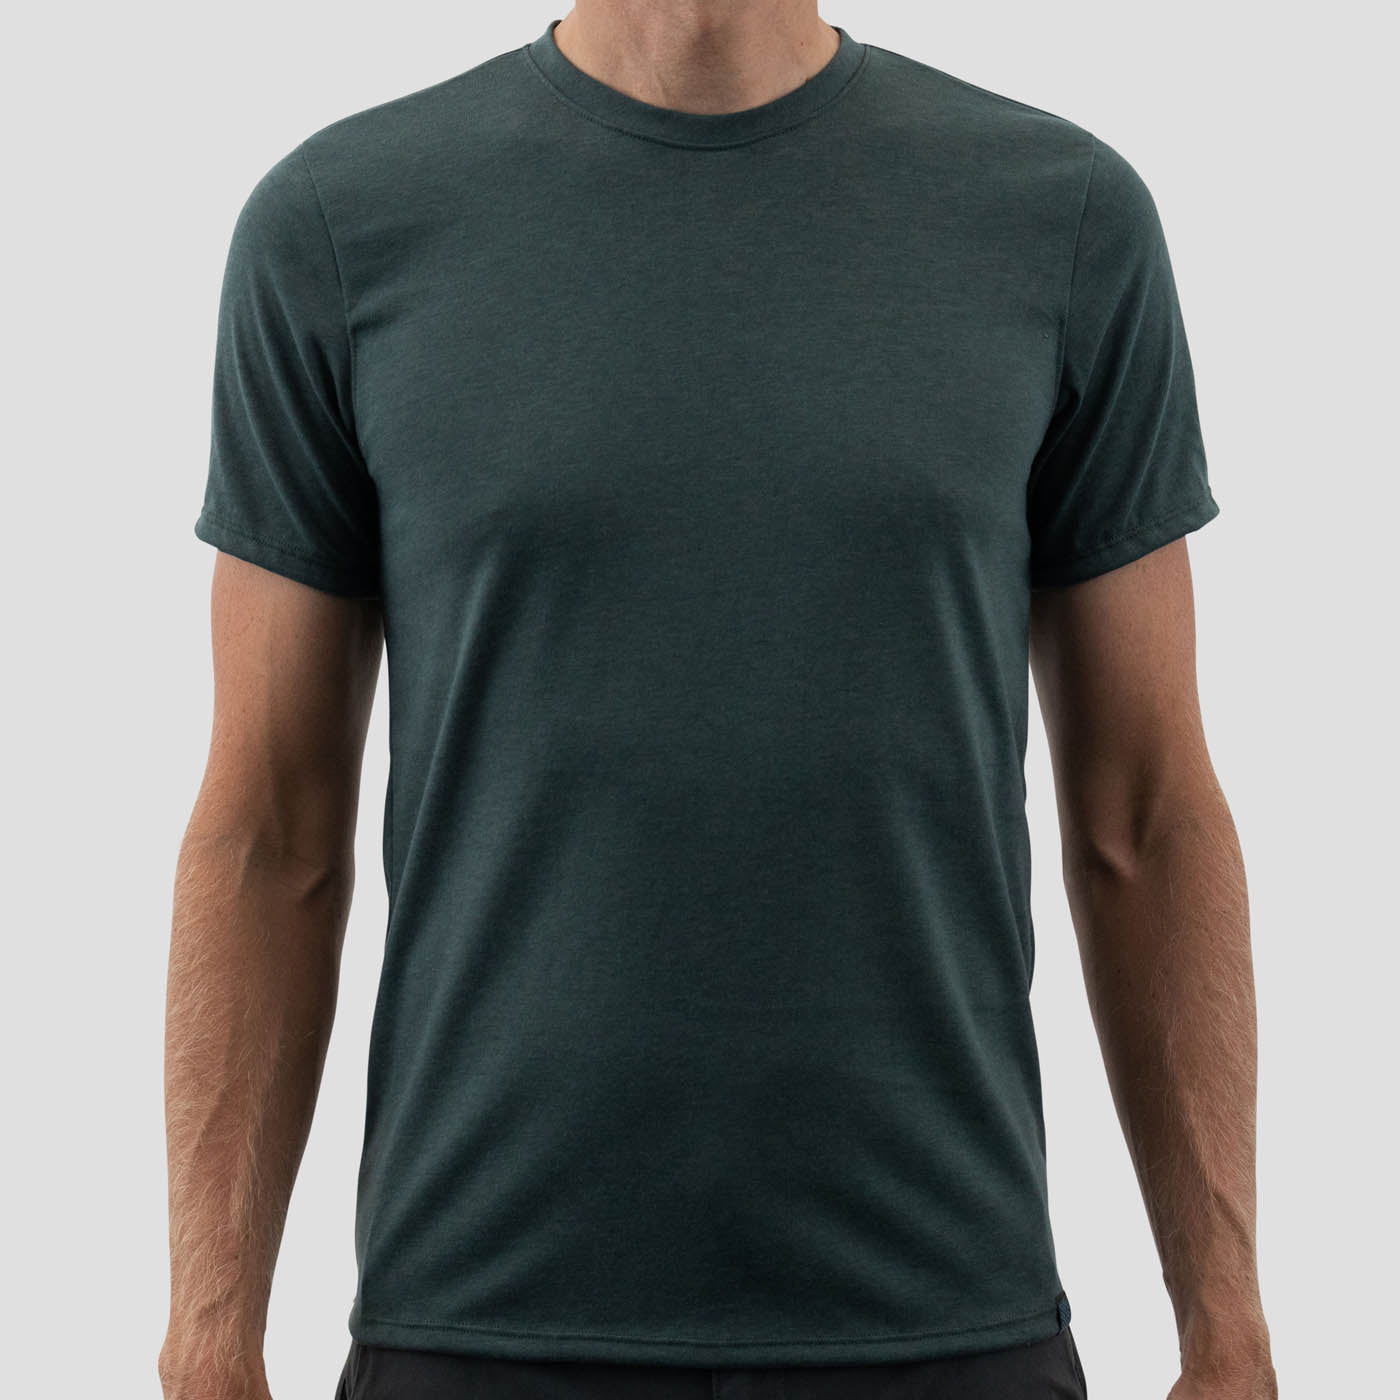 Tech Shirt with DriRelease - Serp (XS only)